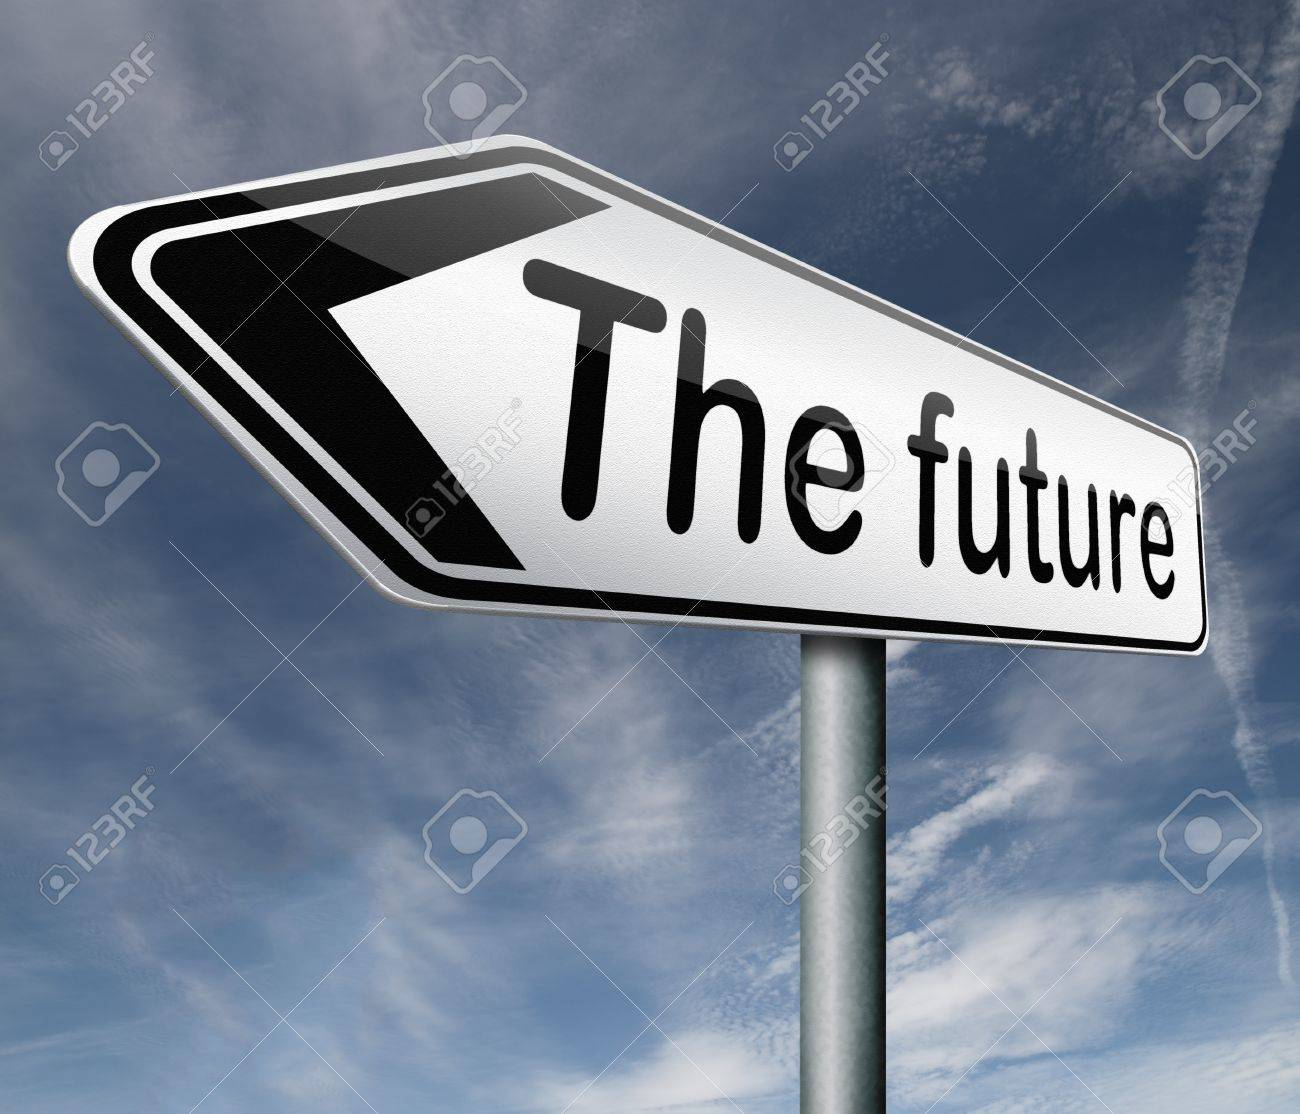 bright future ahead road sign indicating direction to a happy future button icon arrow Stock Photo - 16575573